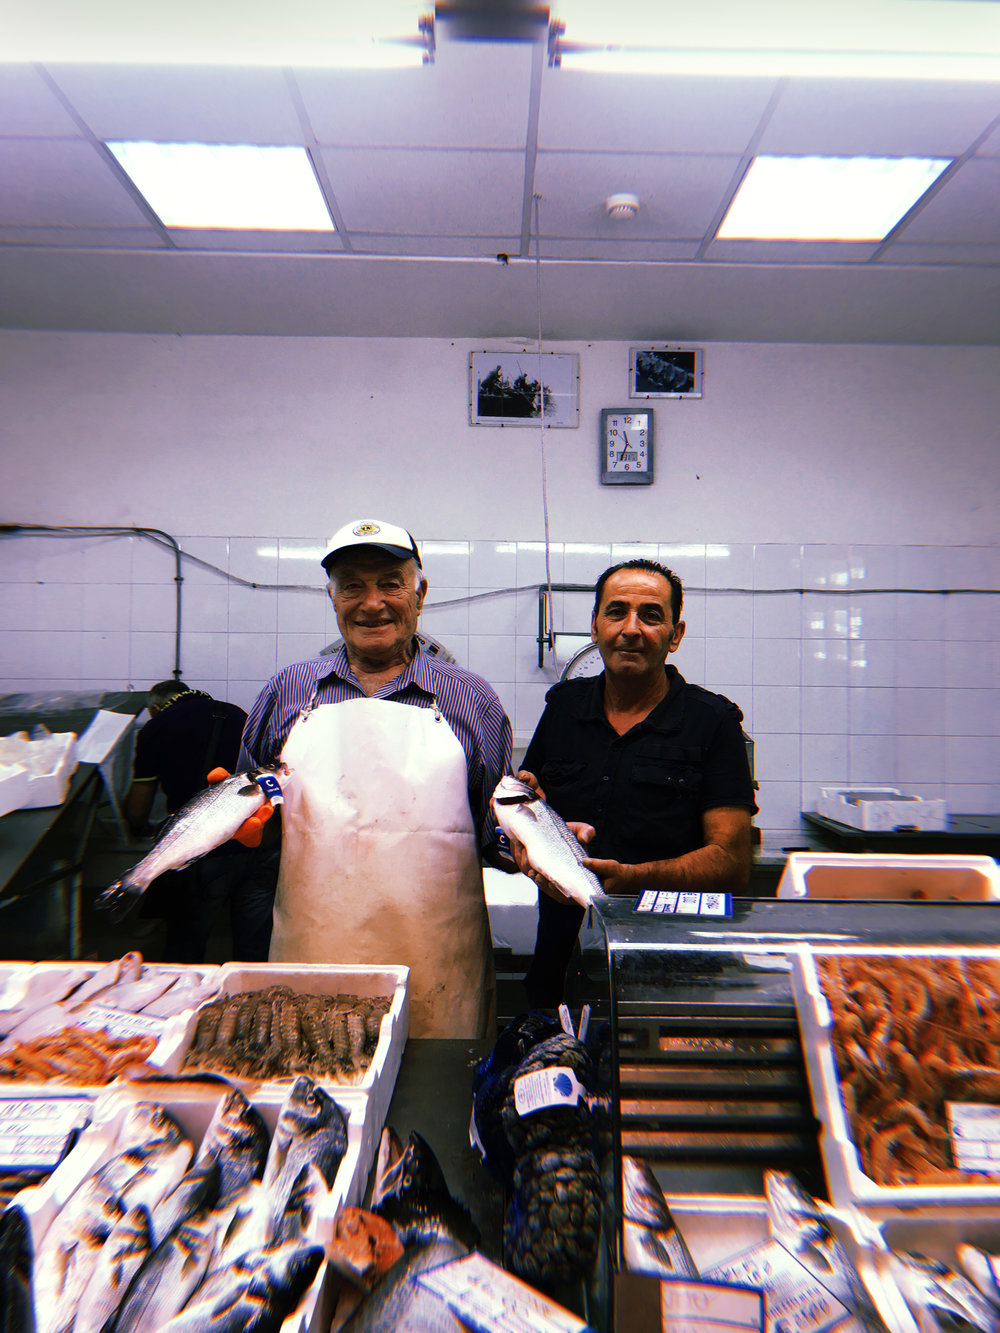 Angelo (left) and his brother (right) at Mercato Michelle Muzii, Pescara, Abruzzo, Italy